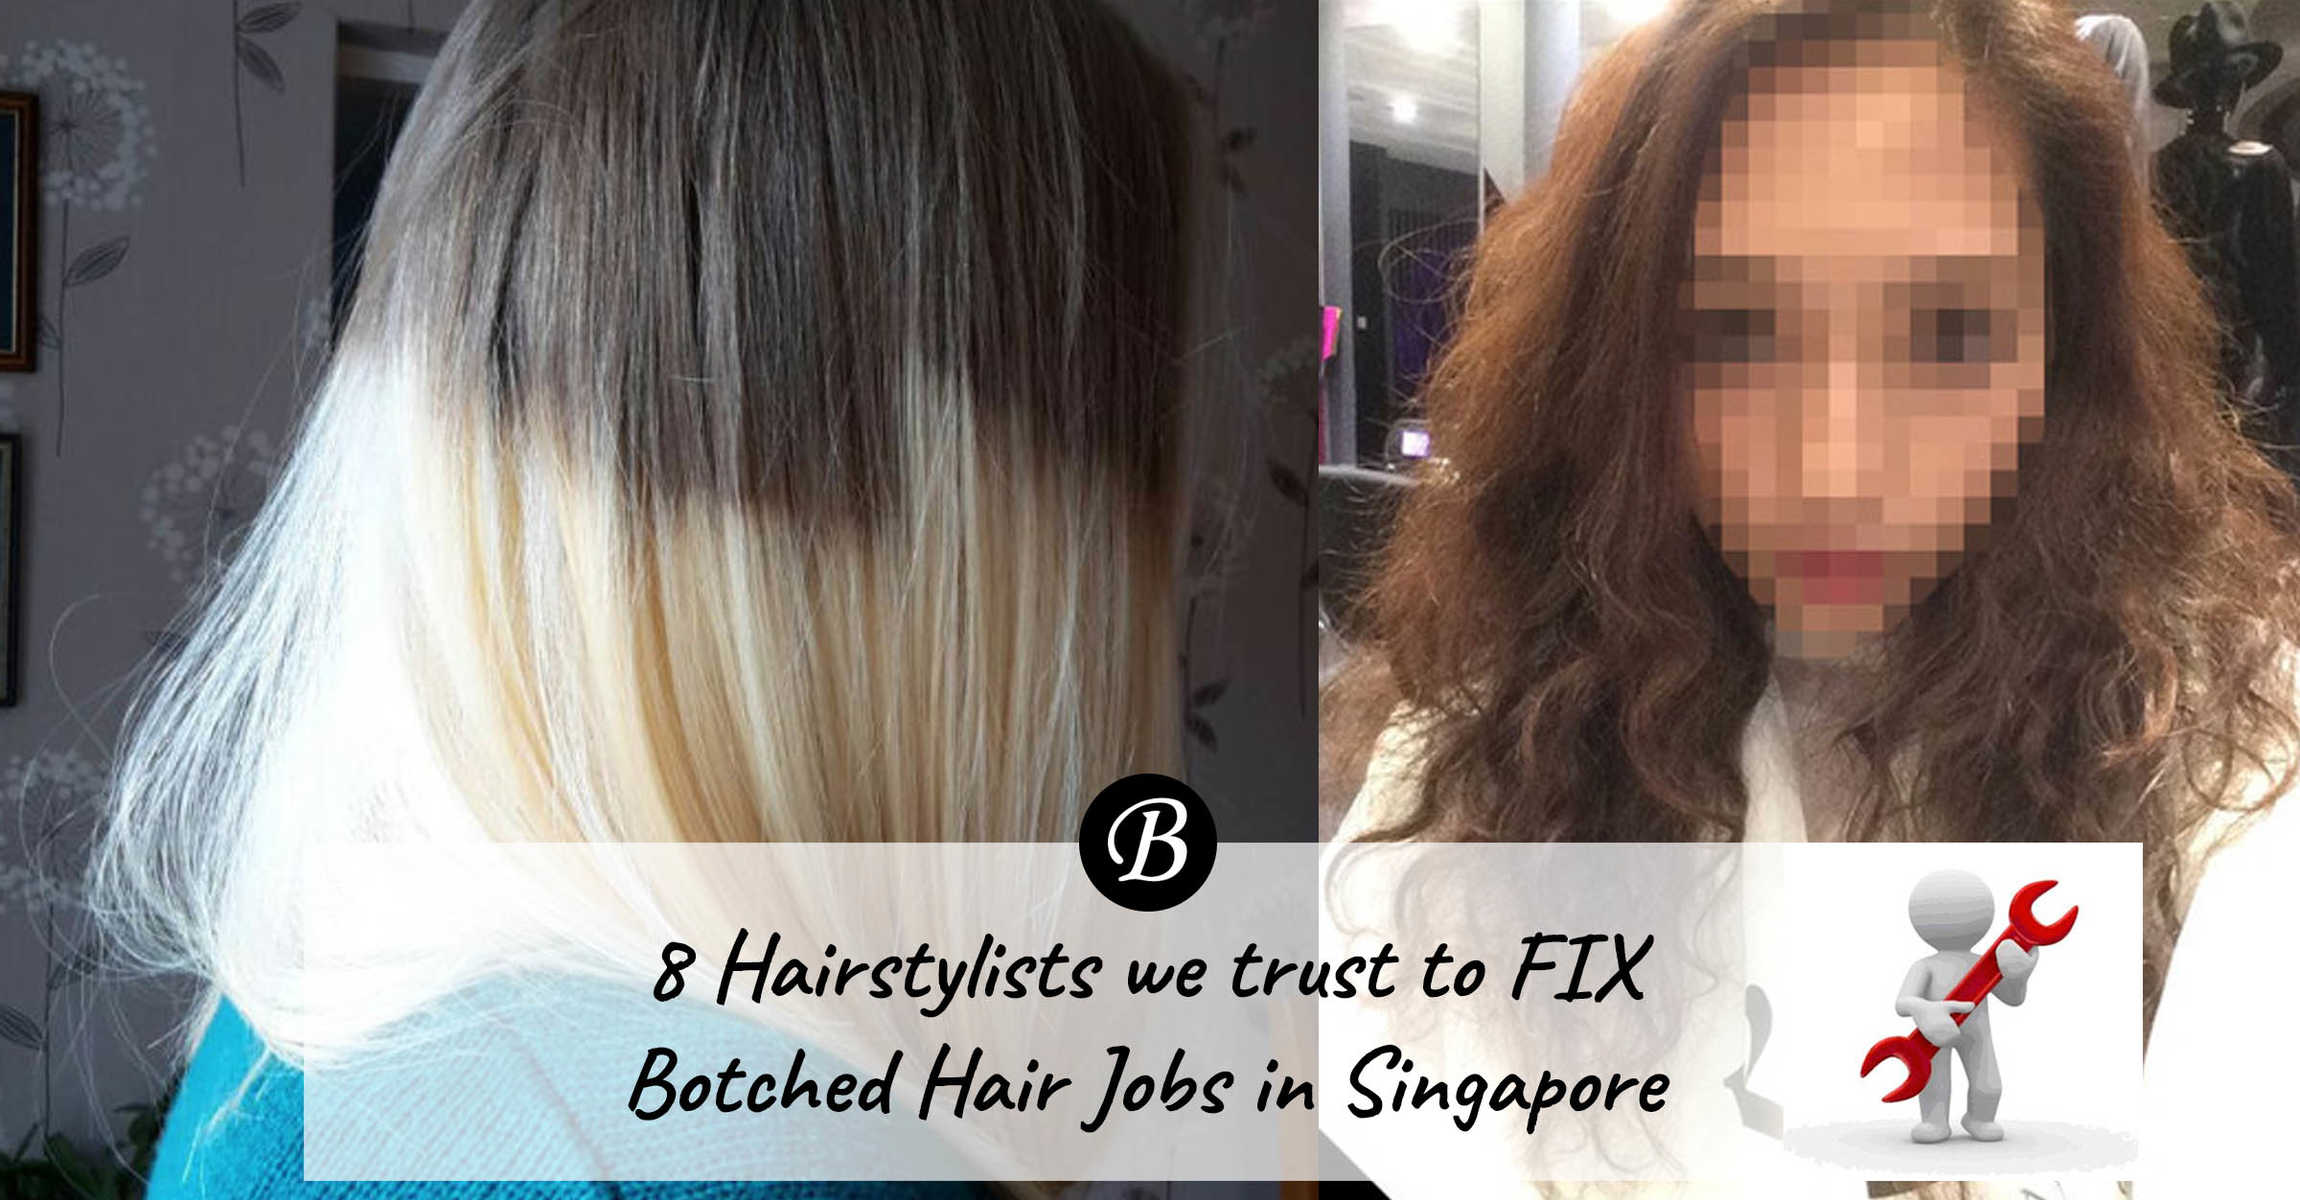 8 Fixer Hairstylists We Trust To Fix Your Hair After A Bad Colour